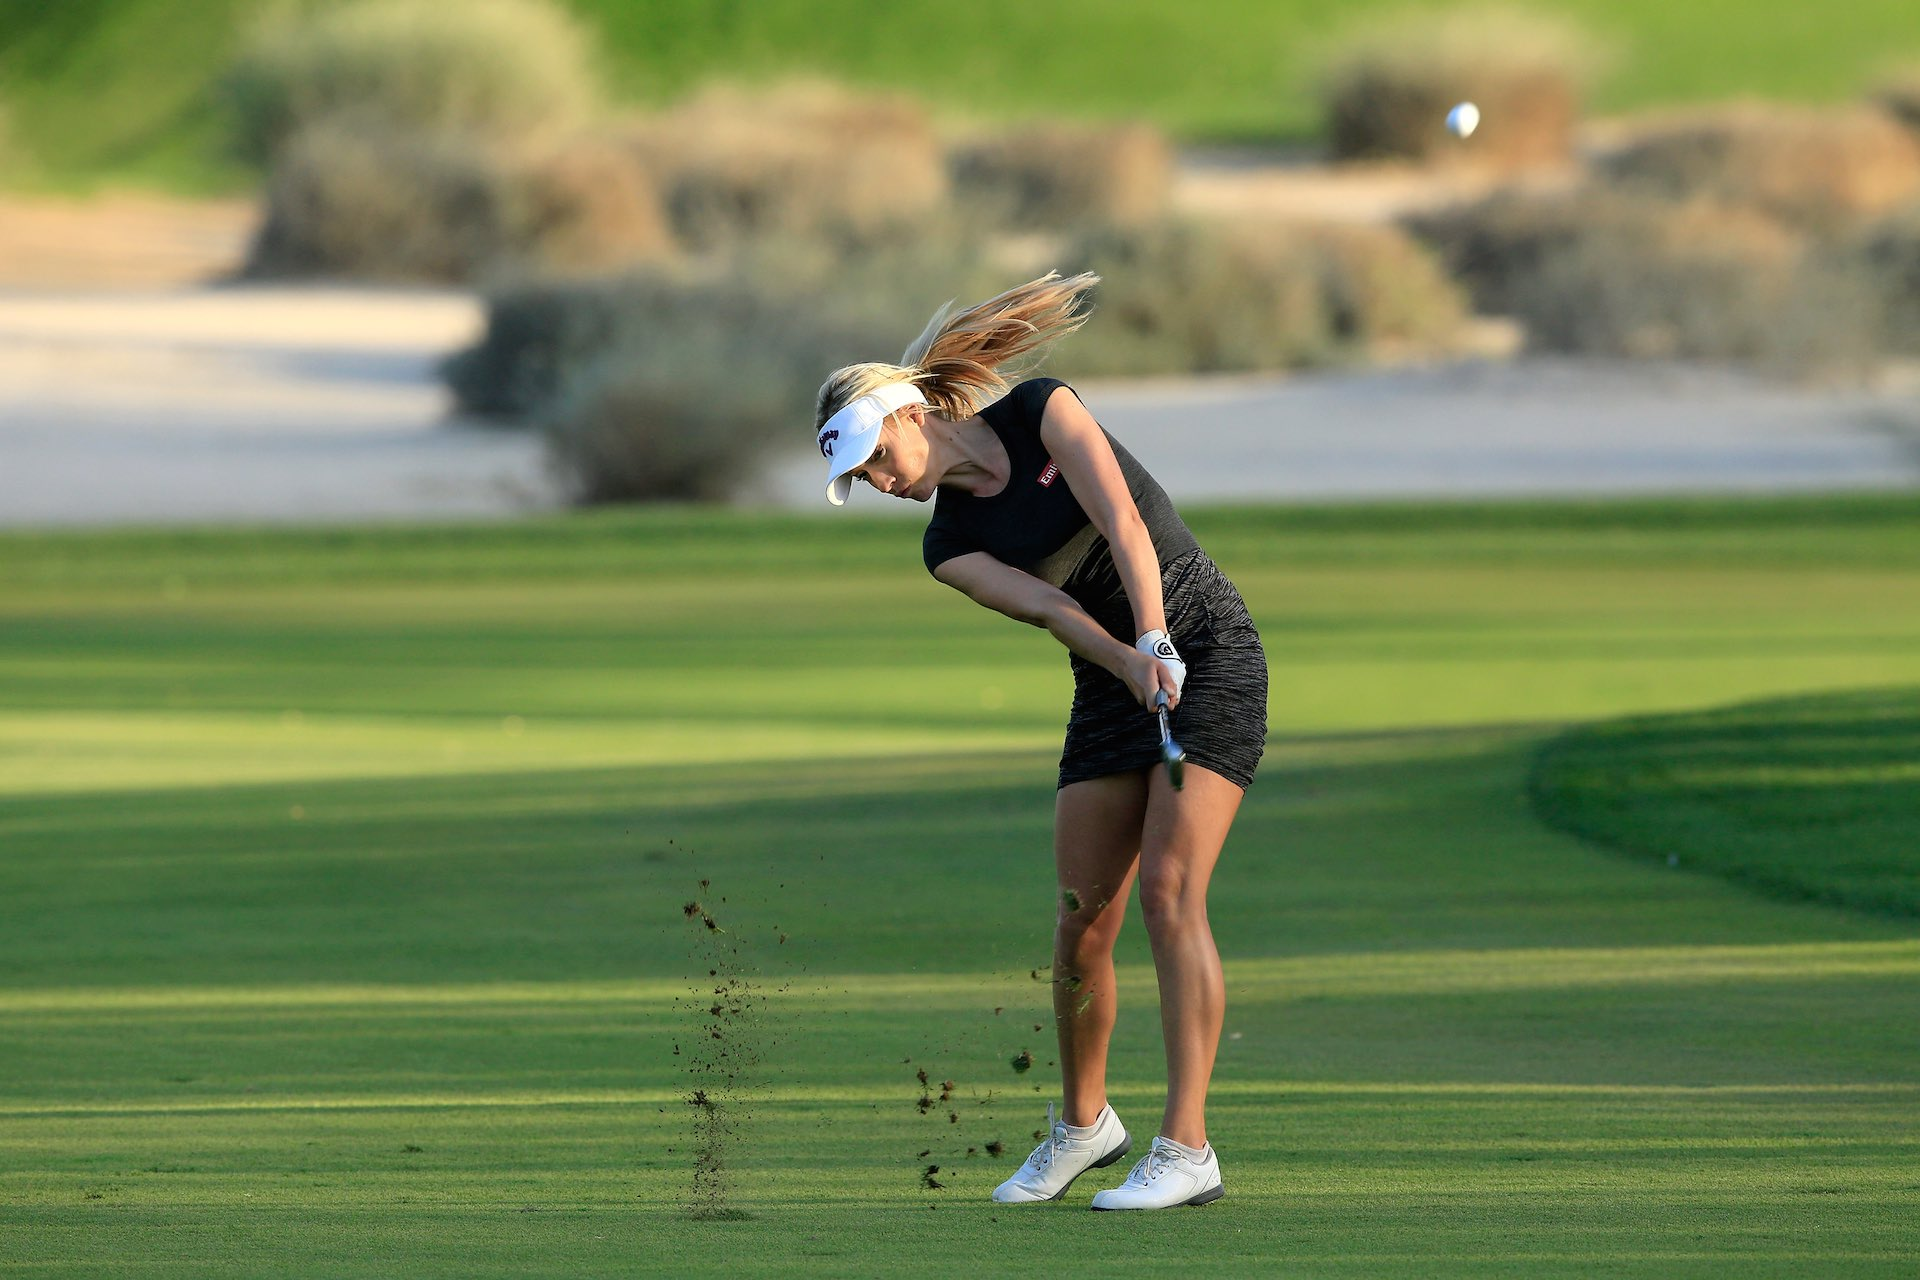 Paige Spiranac In Tears After Second Round